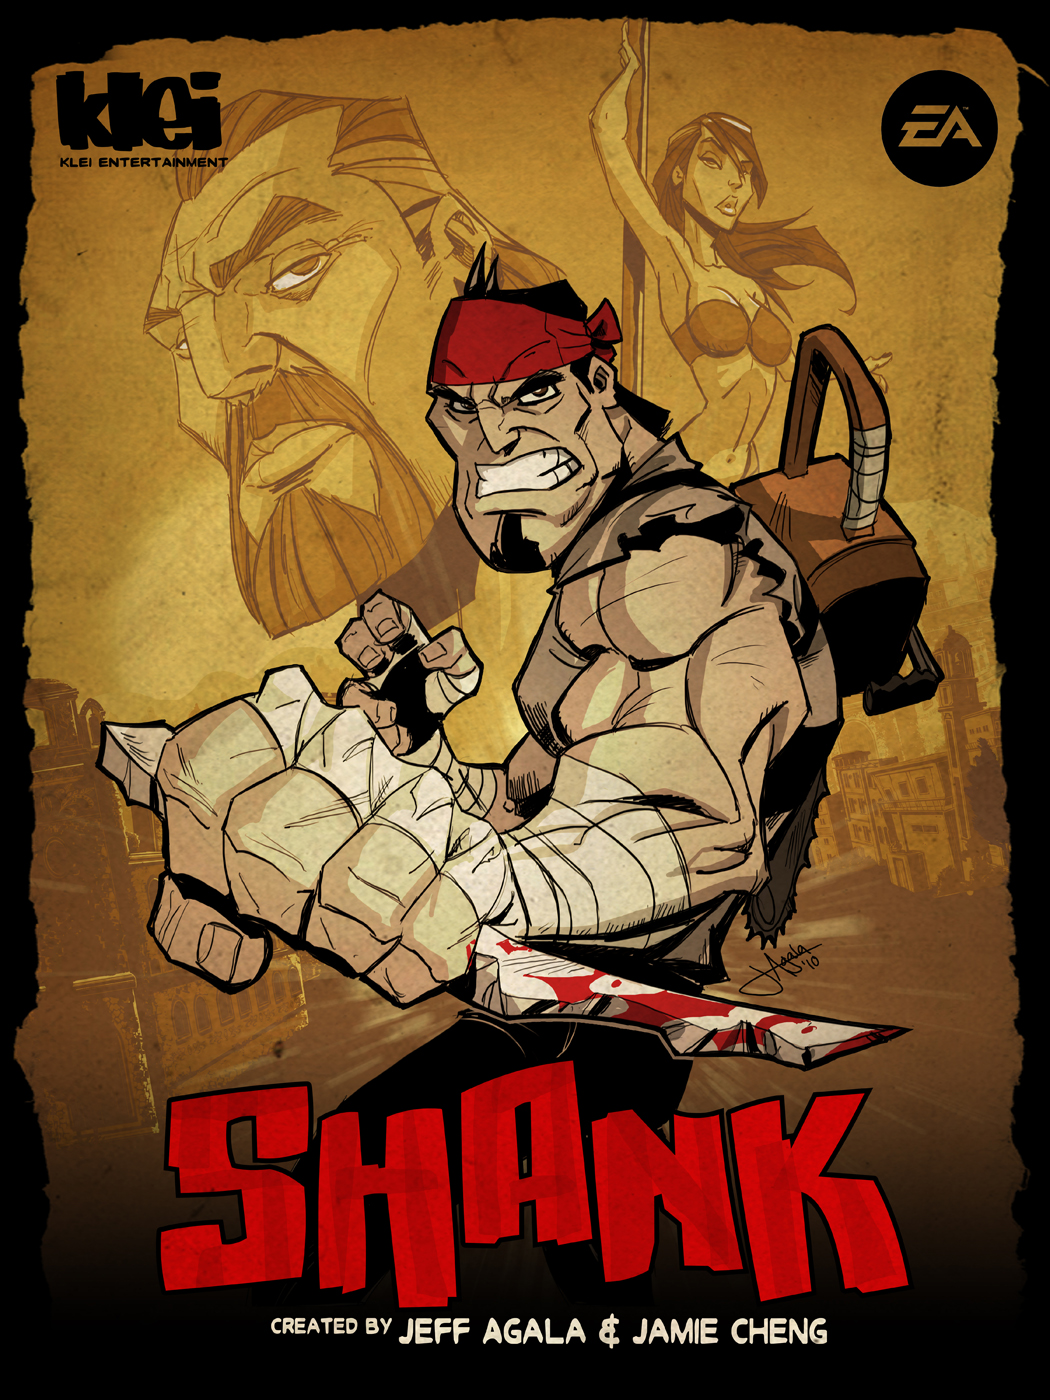 Shank cover